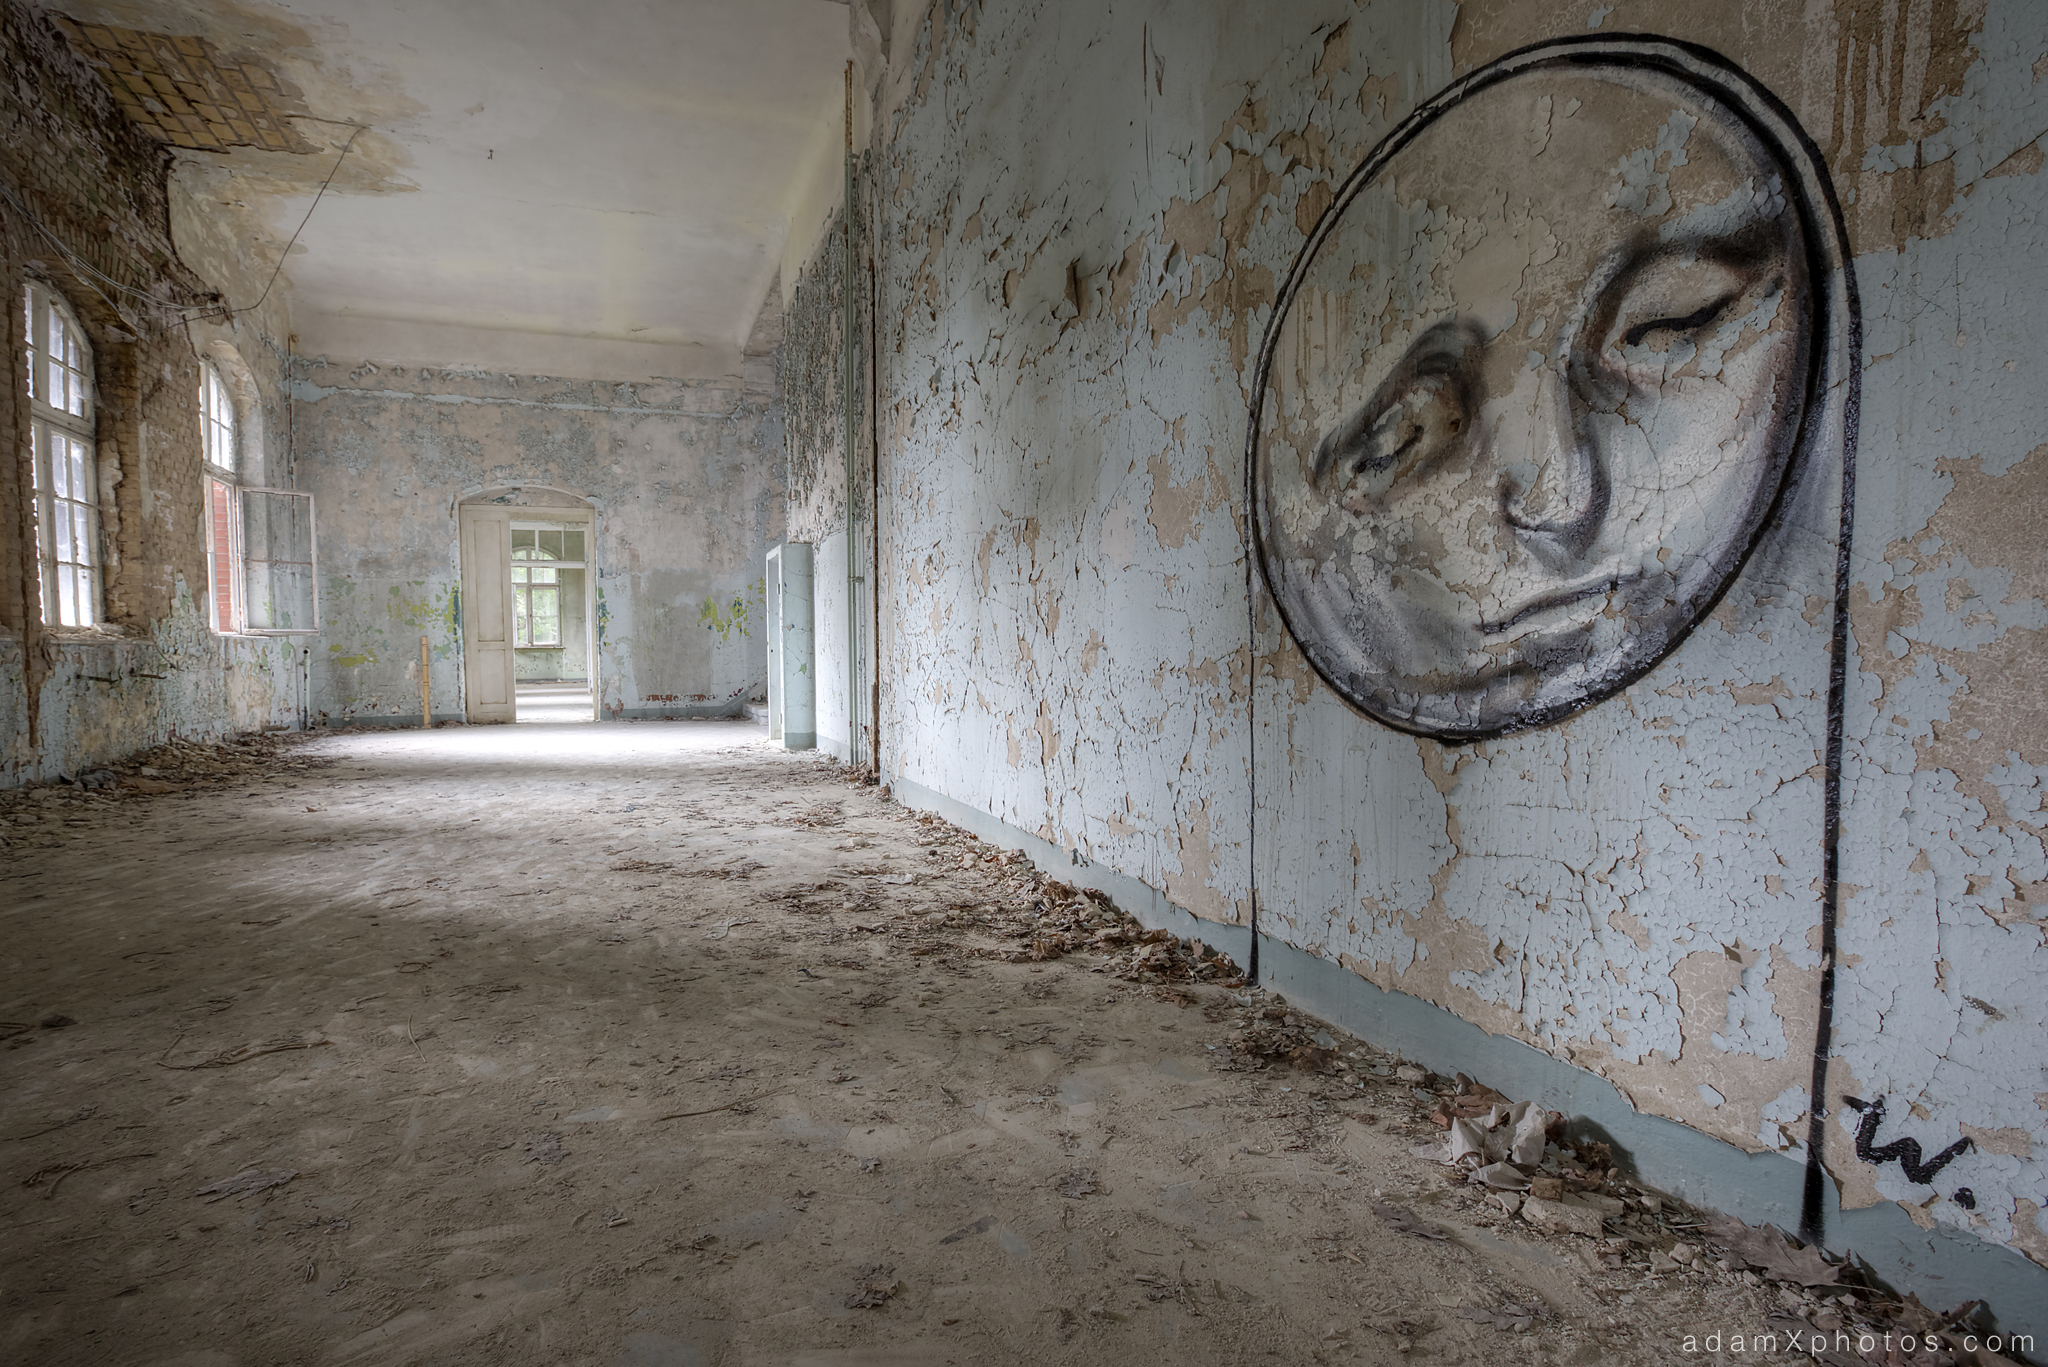 Adam X Urbex Beelitz Heilstatten Germany Urban Exploration Mens Men's Sanatorium Hospital Decay Lost Abandoned Hidden art mural graffiti moon face peeling paint